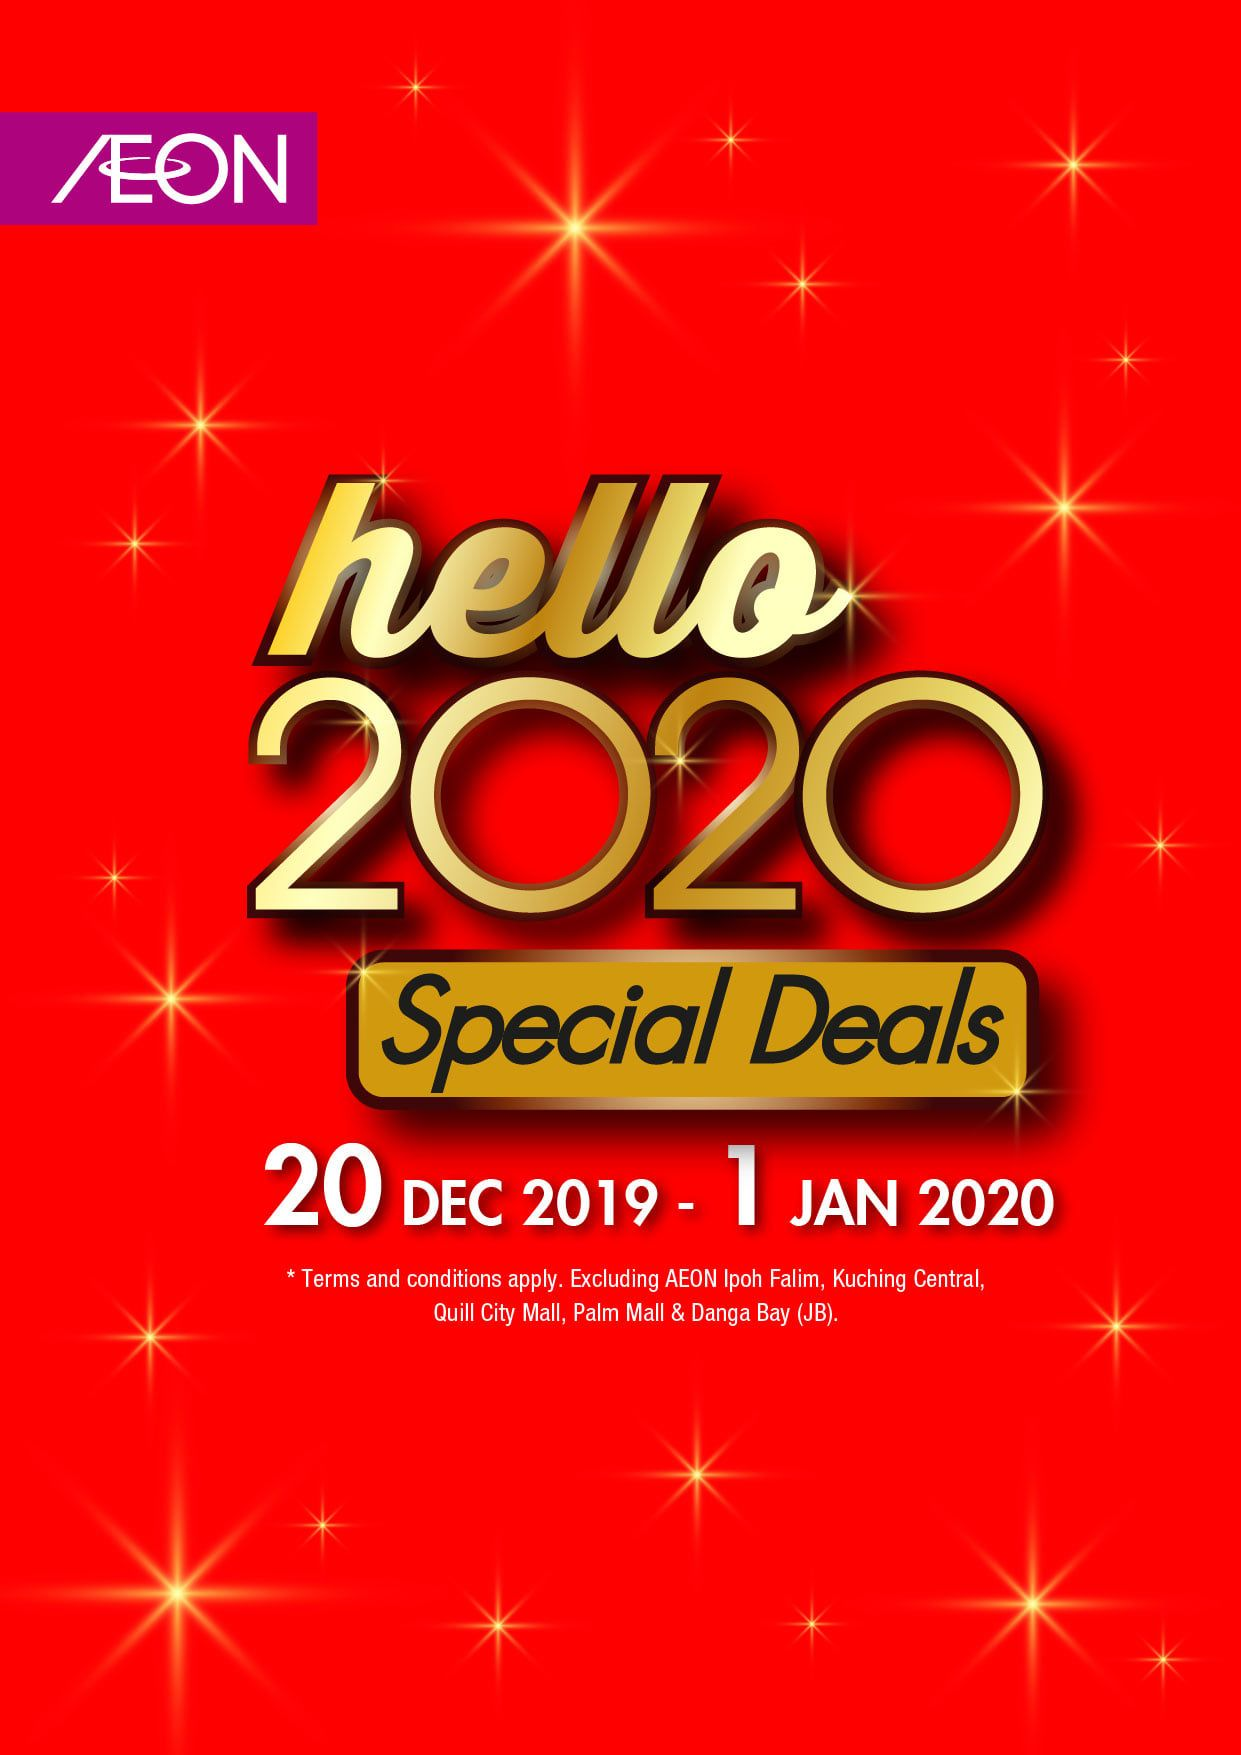 Aeon New Year 2020 Promotion 20 December 2019 1 January 2020 New Year 2020 Promotion Newyear